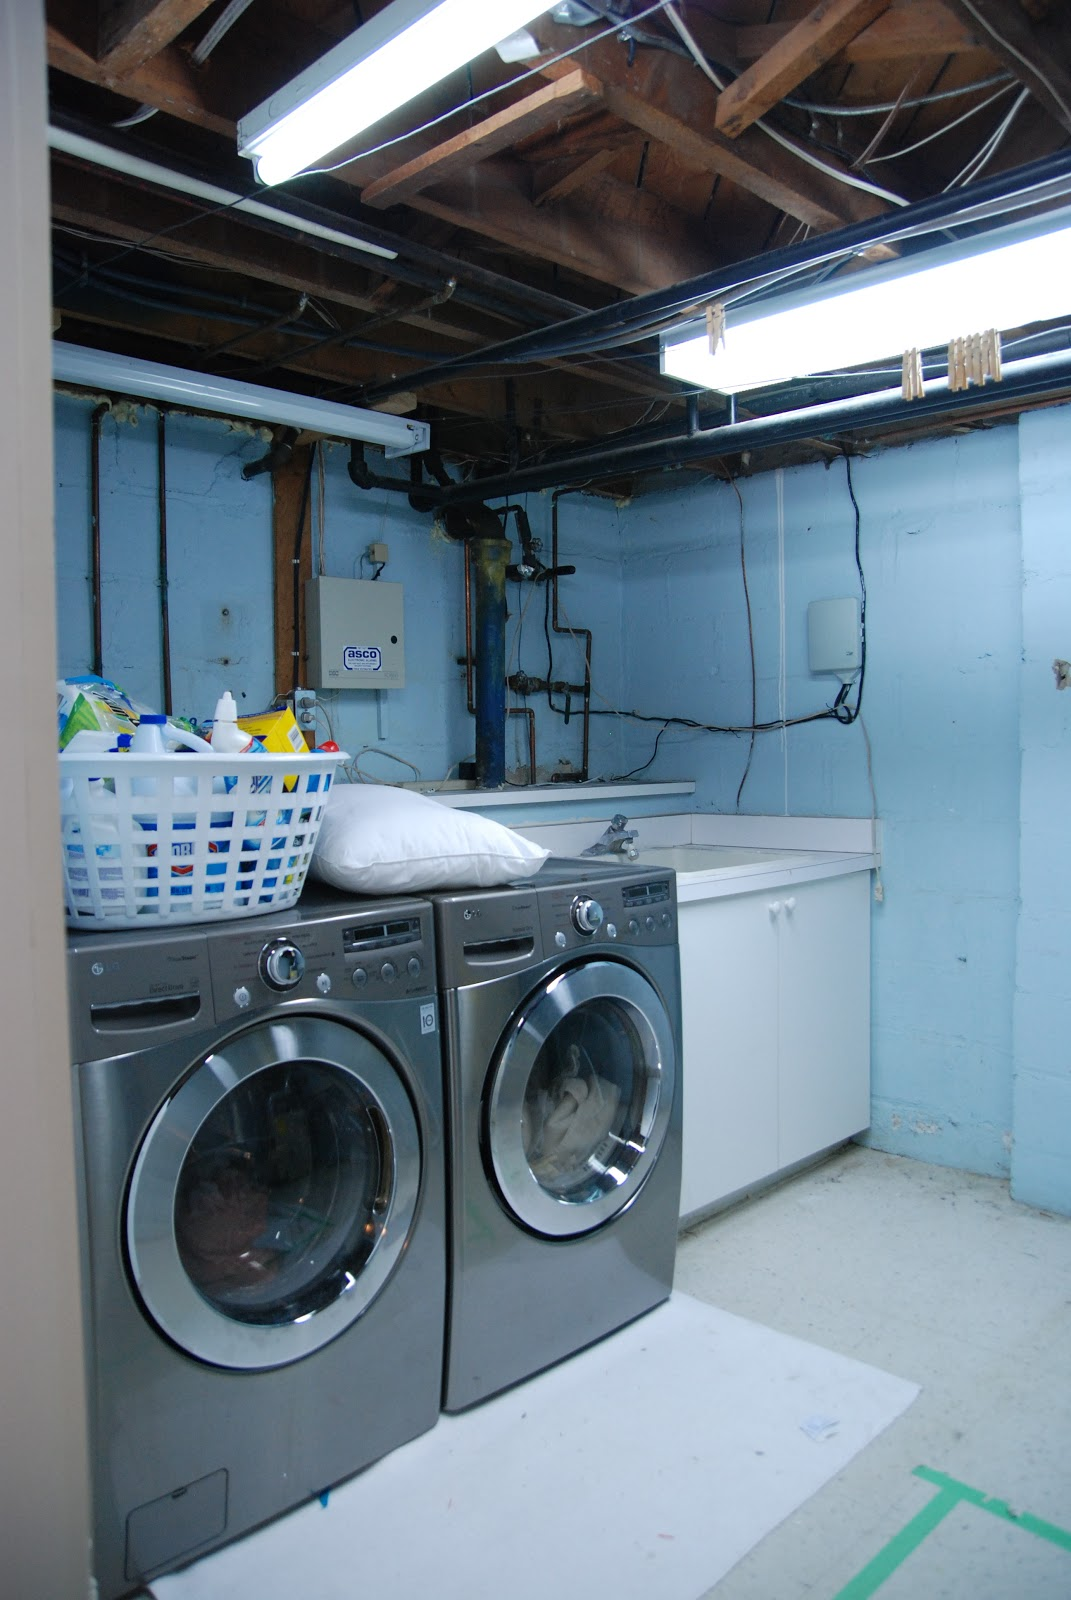 Basement Laundry Room Before And After Laundry Room Reveal Pt...